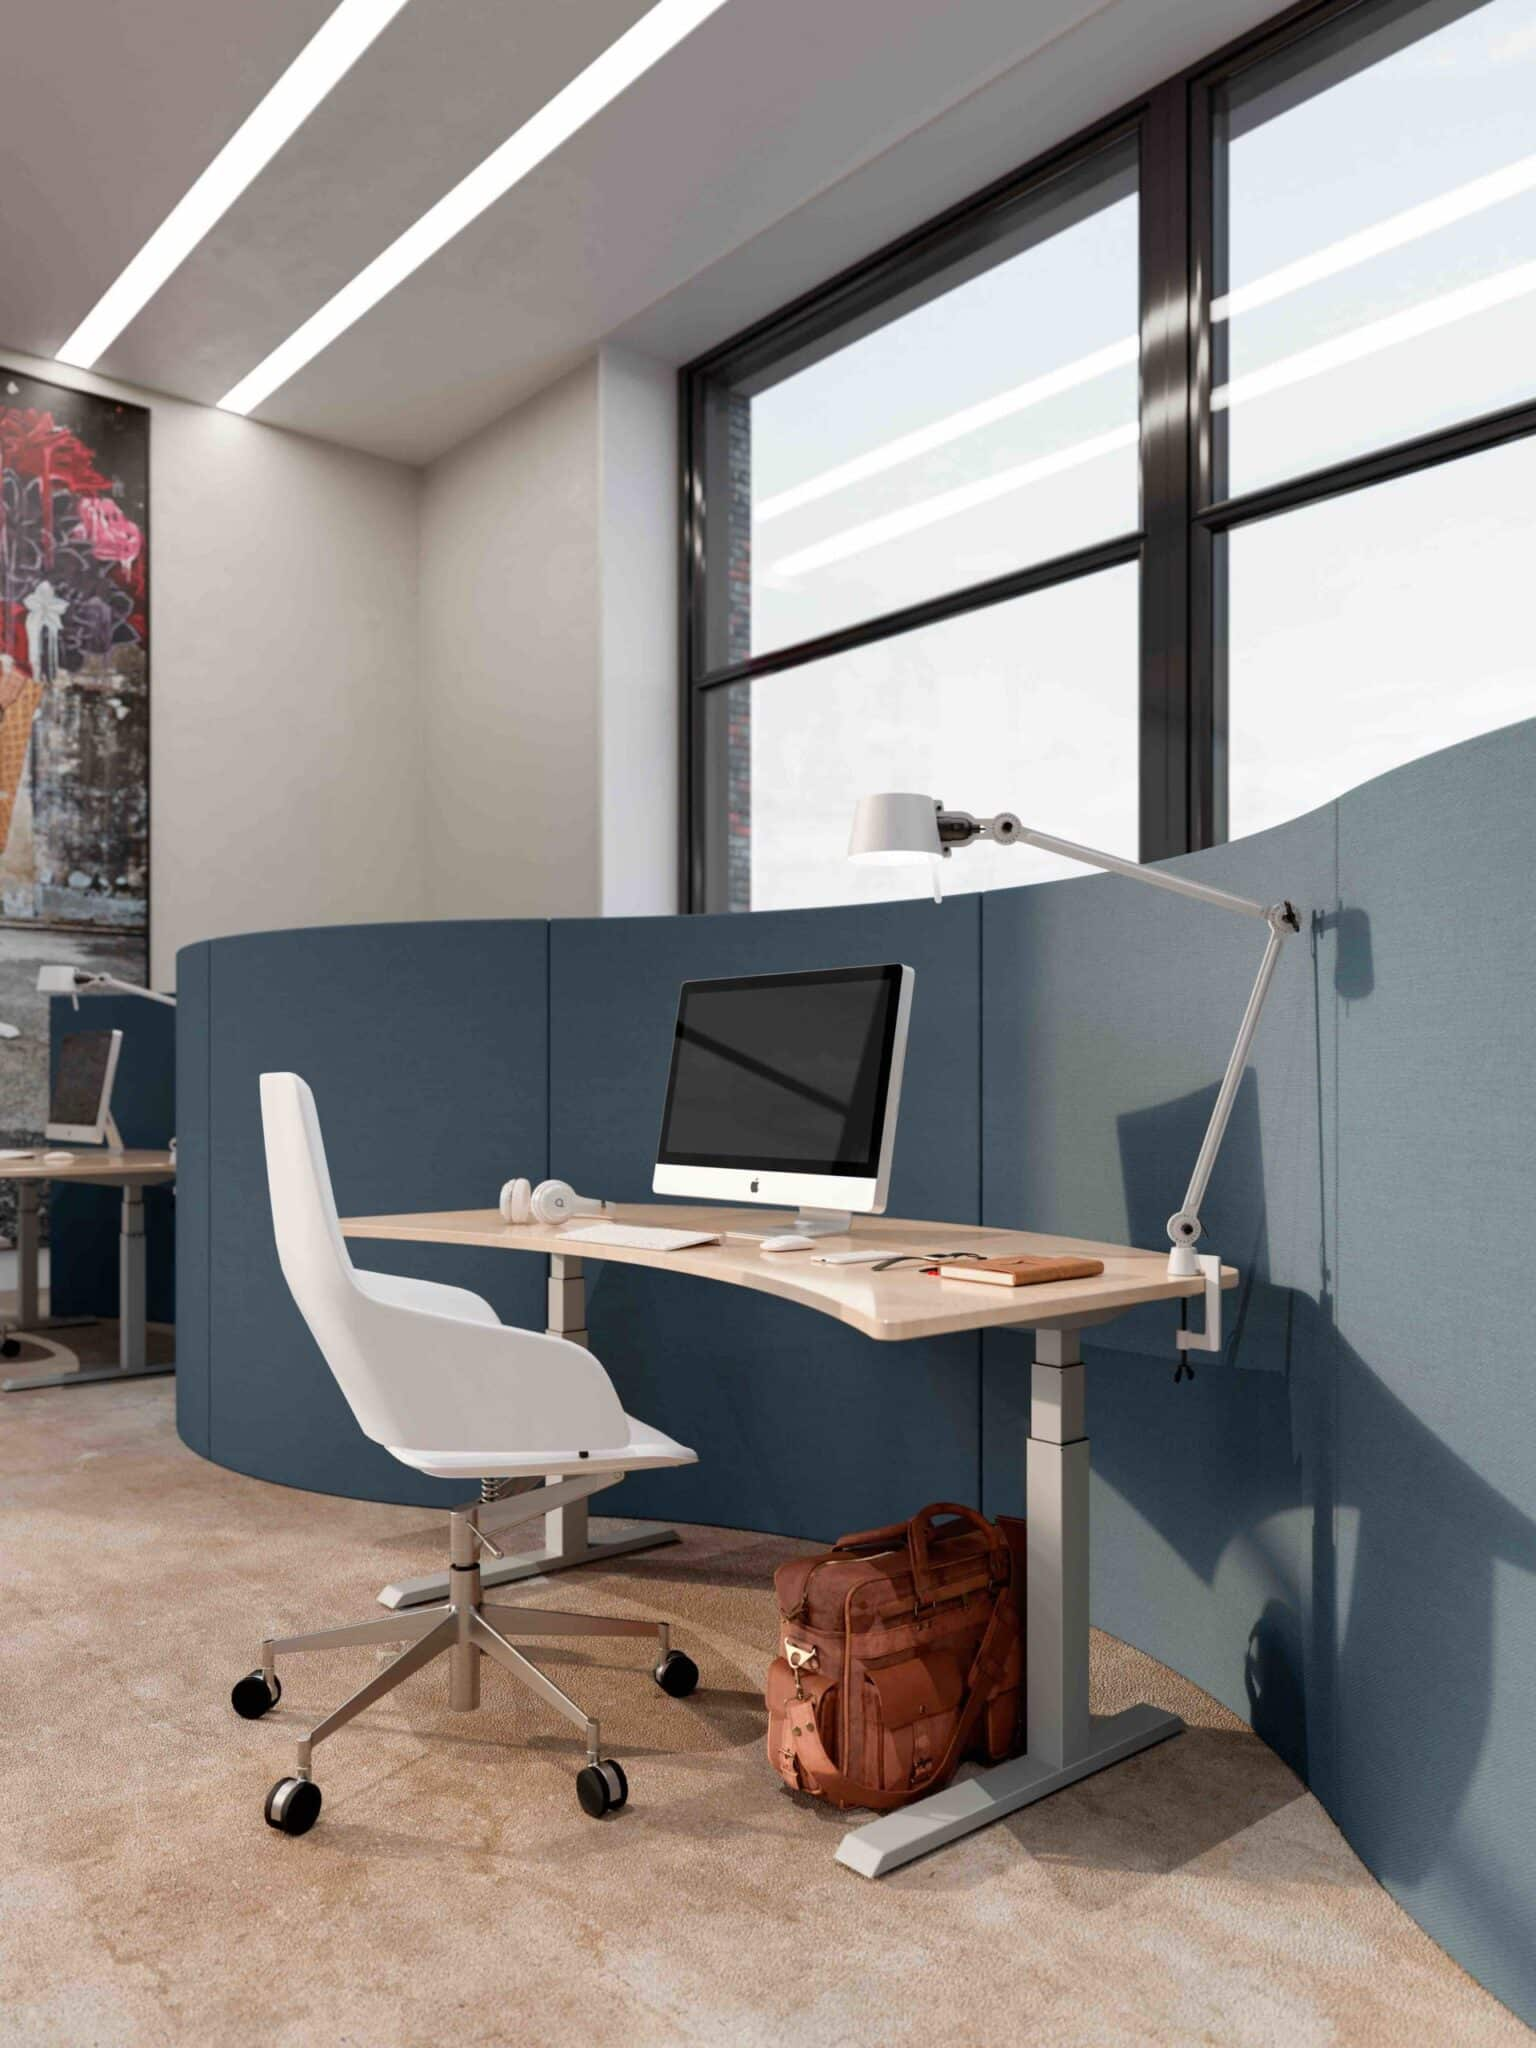 Actiforce SLS 470 Standing Desk in silver color with curved top